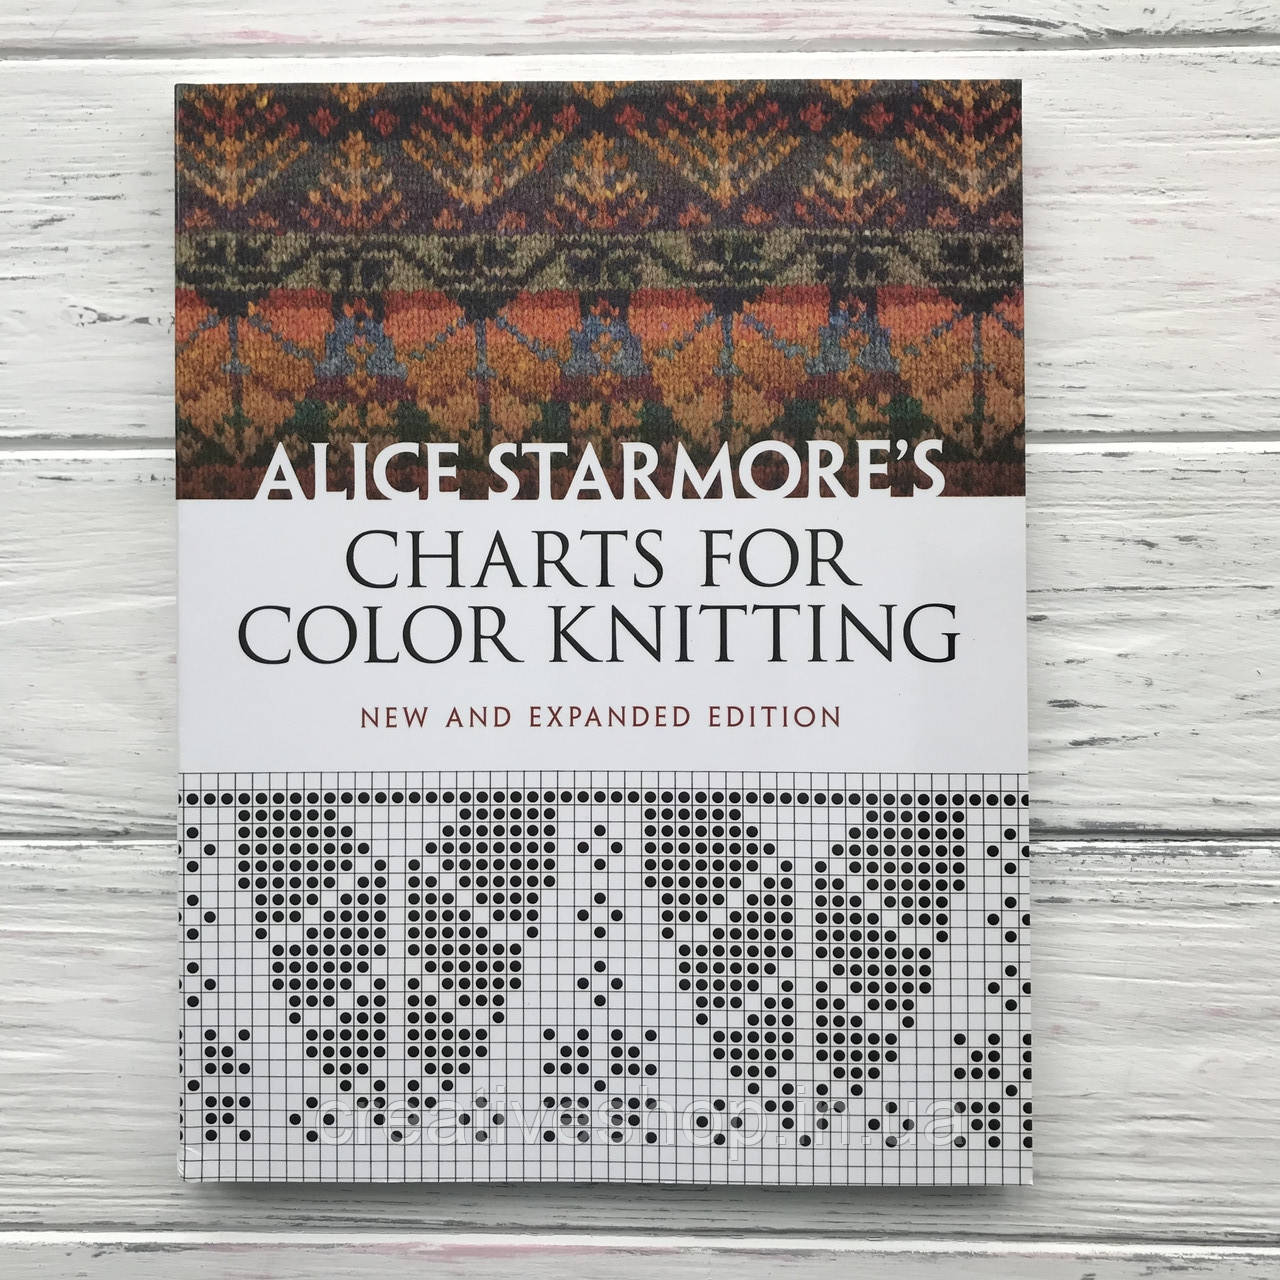 Alice Starmore's Charts fo color knitting